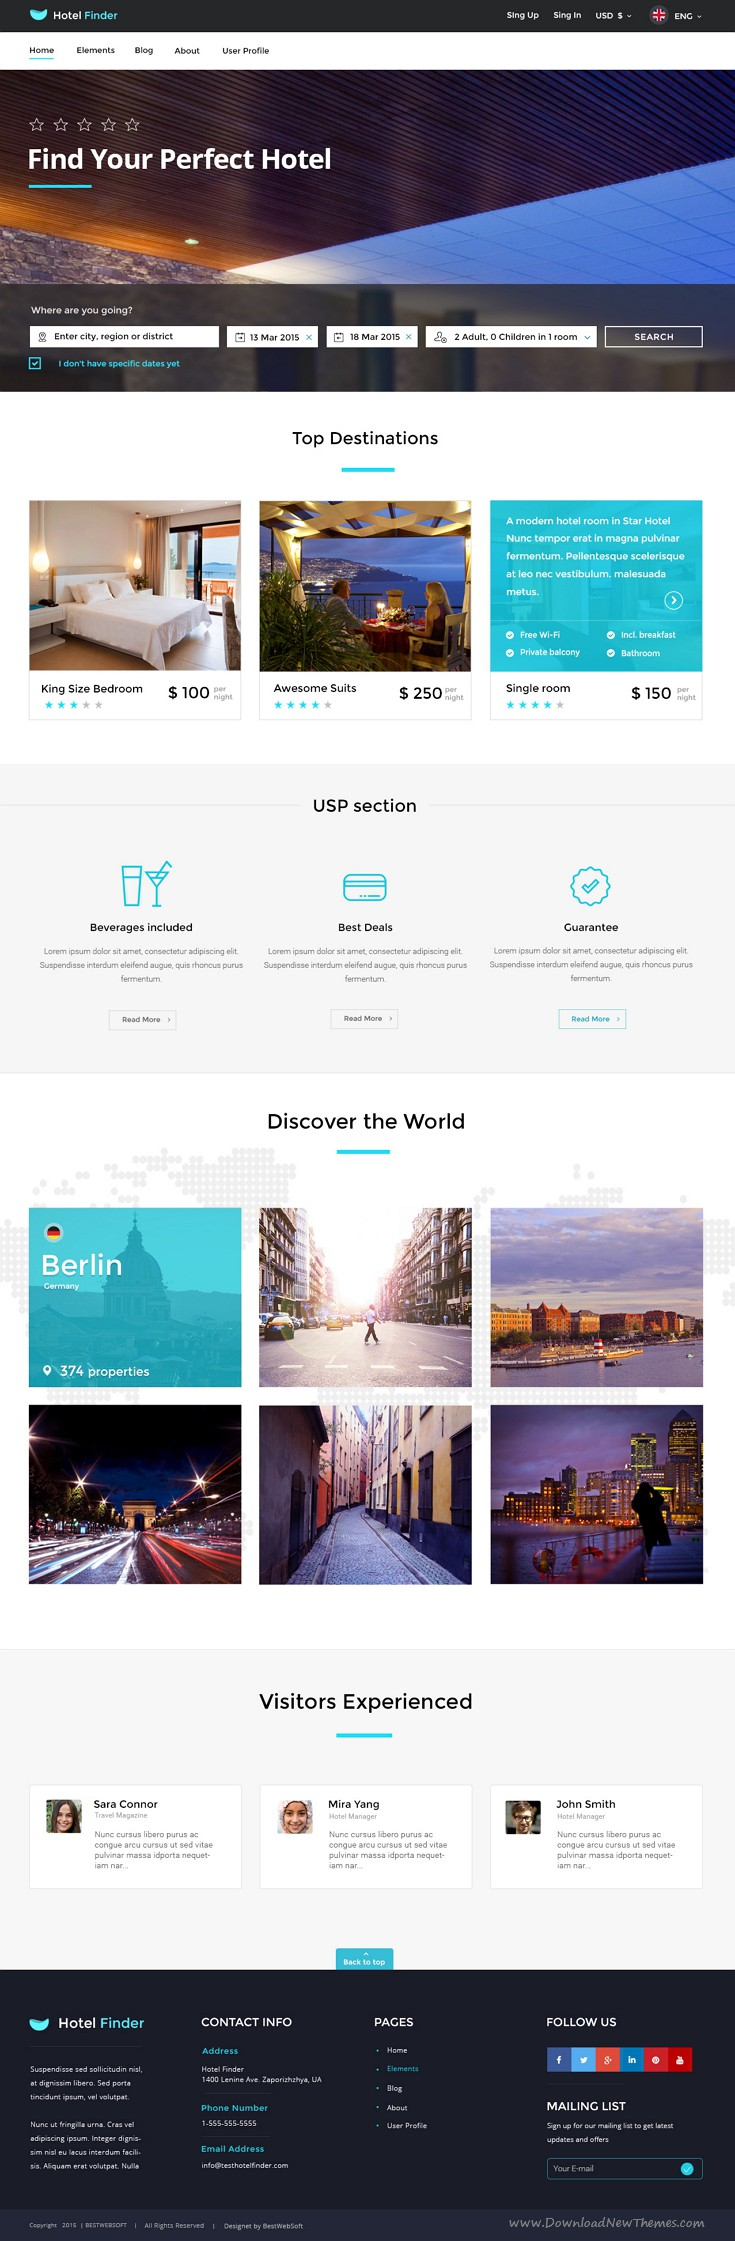 Hotel Finder - Online Booking HTML Website Template | Hotel finder ...